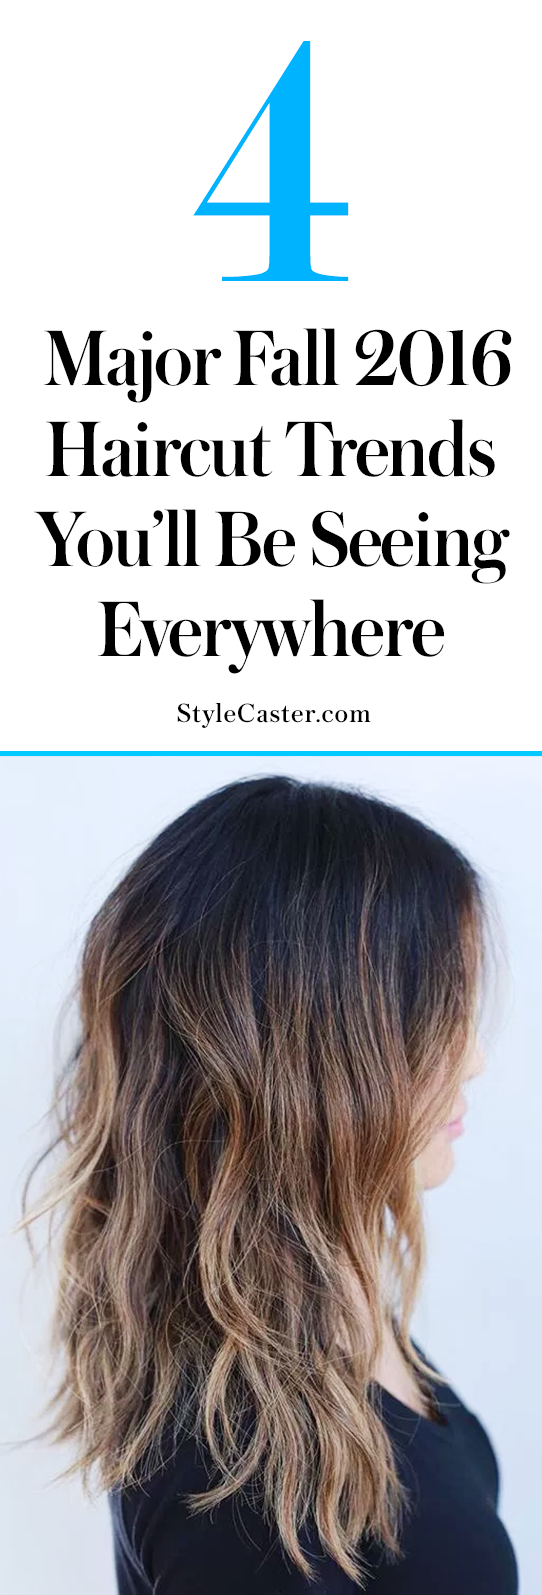 The best fall 2016 haircut trends | New trendy haircut ideas for women | @StyleCaster